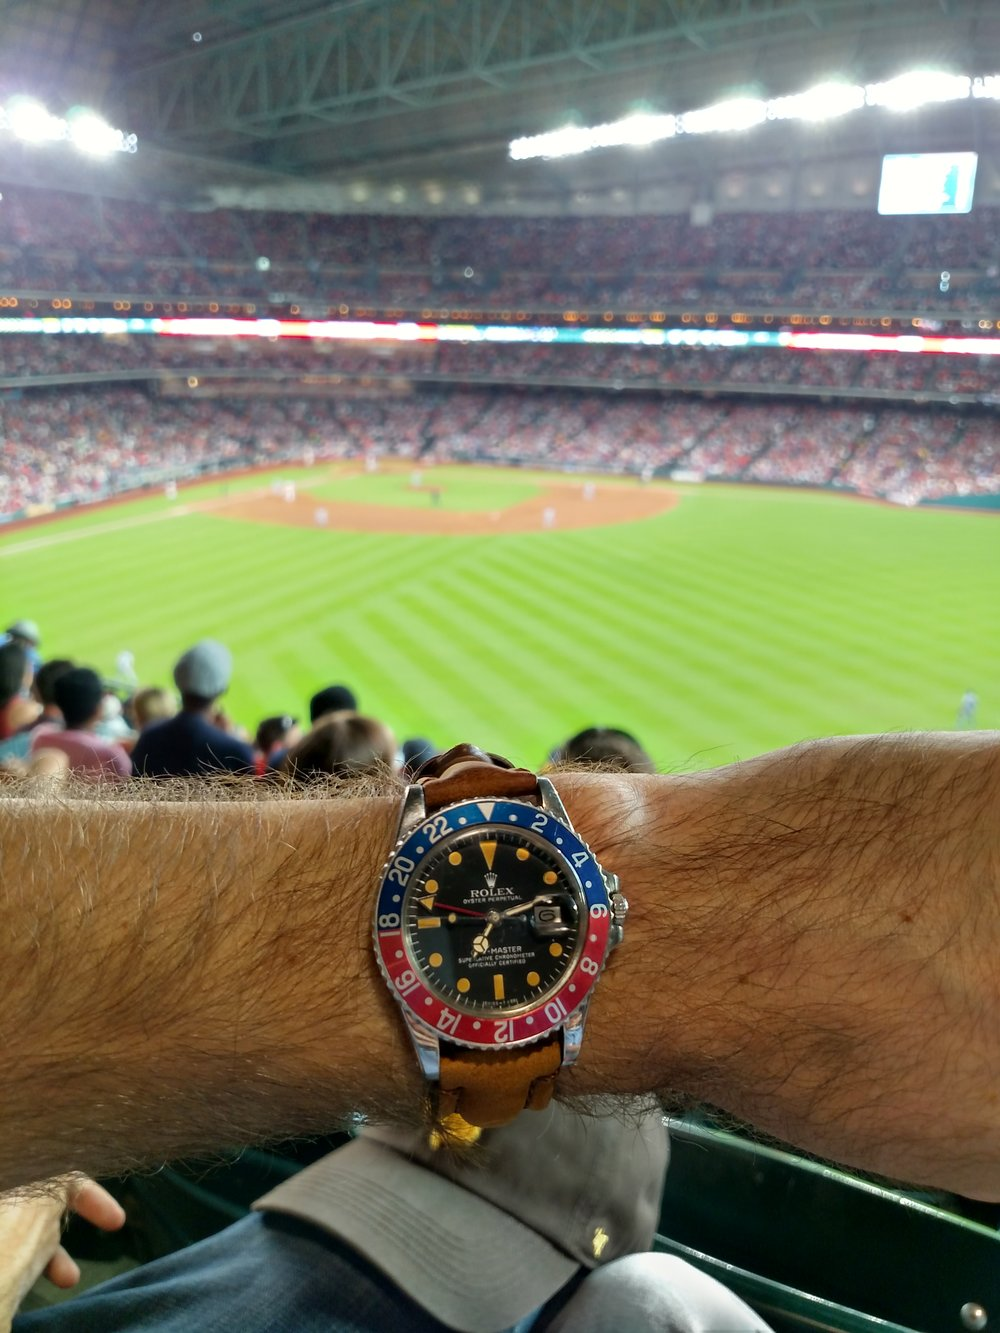 1977 Rolex GMT Master 1675 at the Houston Astro's Minute Maid Park  Downtown Houston, Texas